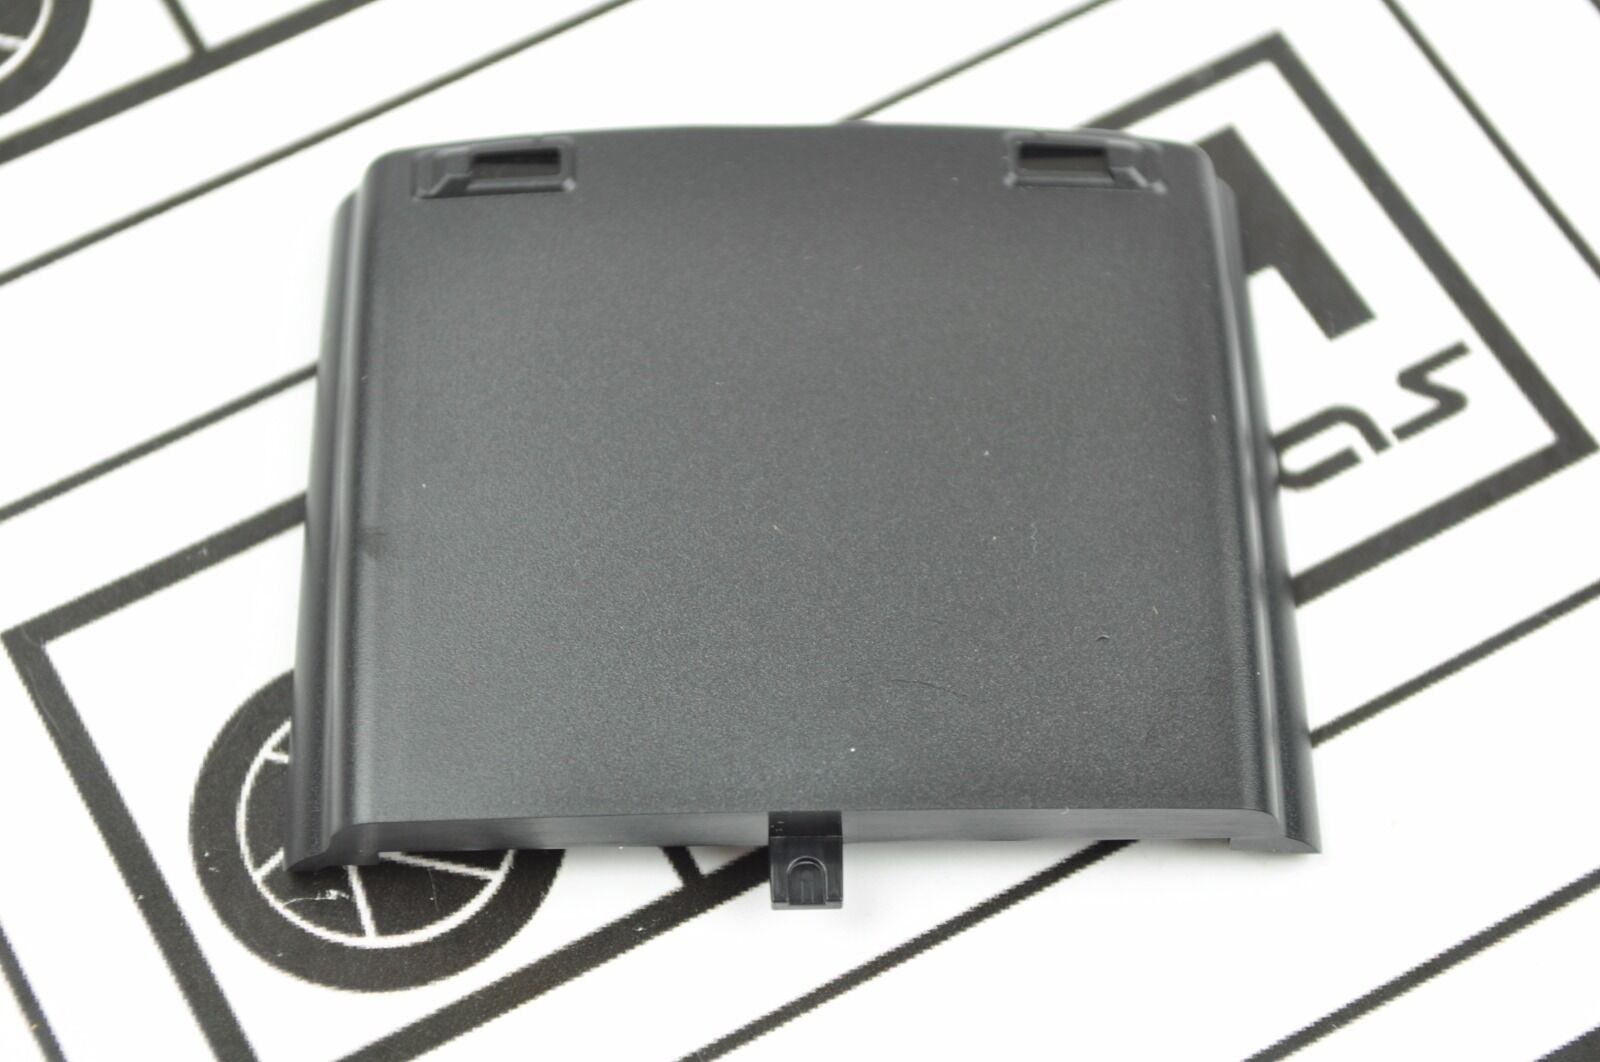 Nikon Speedlight SB910 SB-910 Top Cover Wide Panel Cover SS040-67F  DH9567